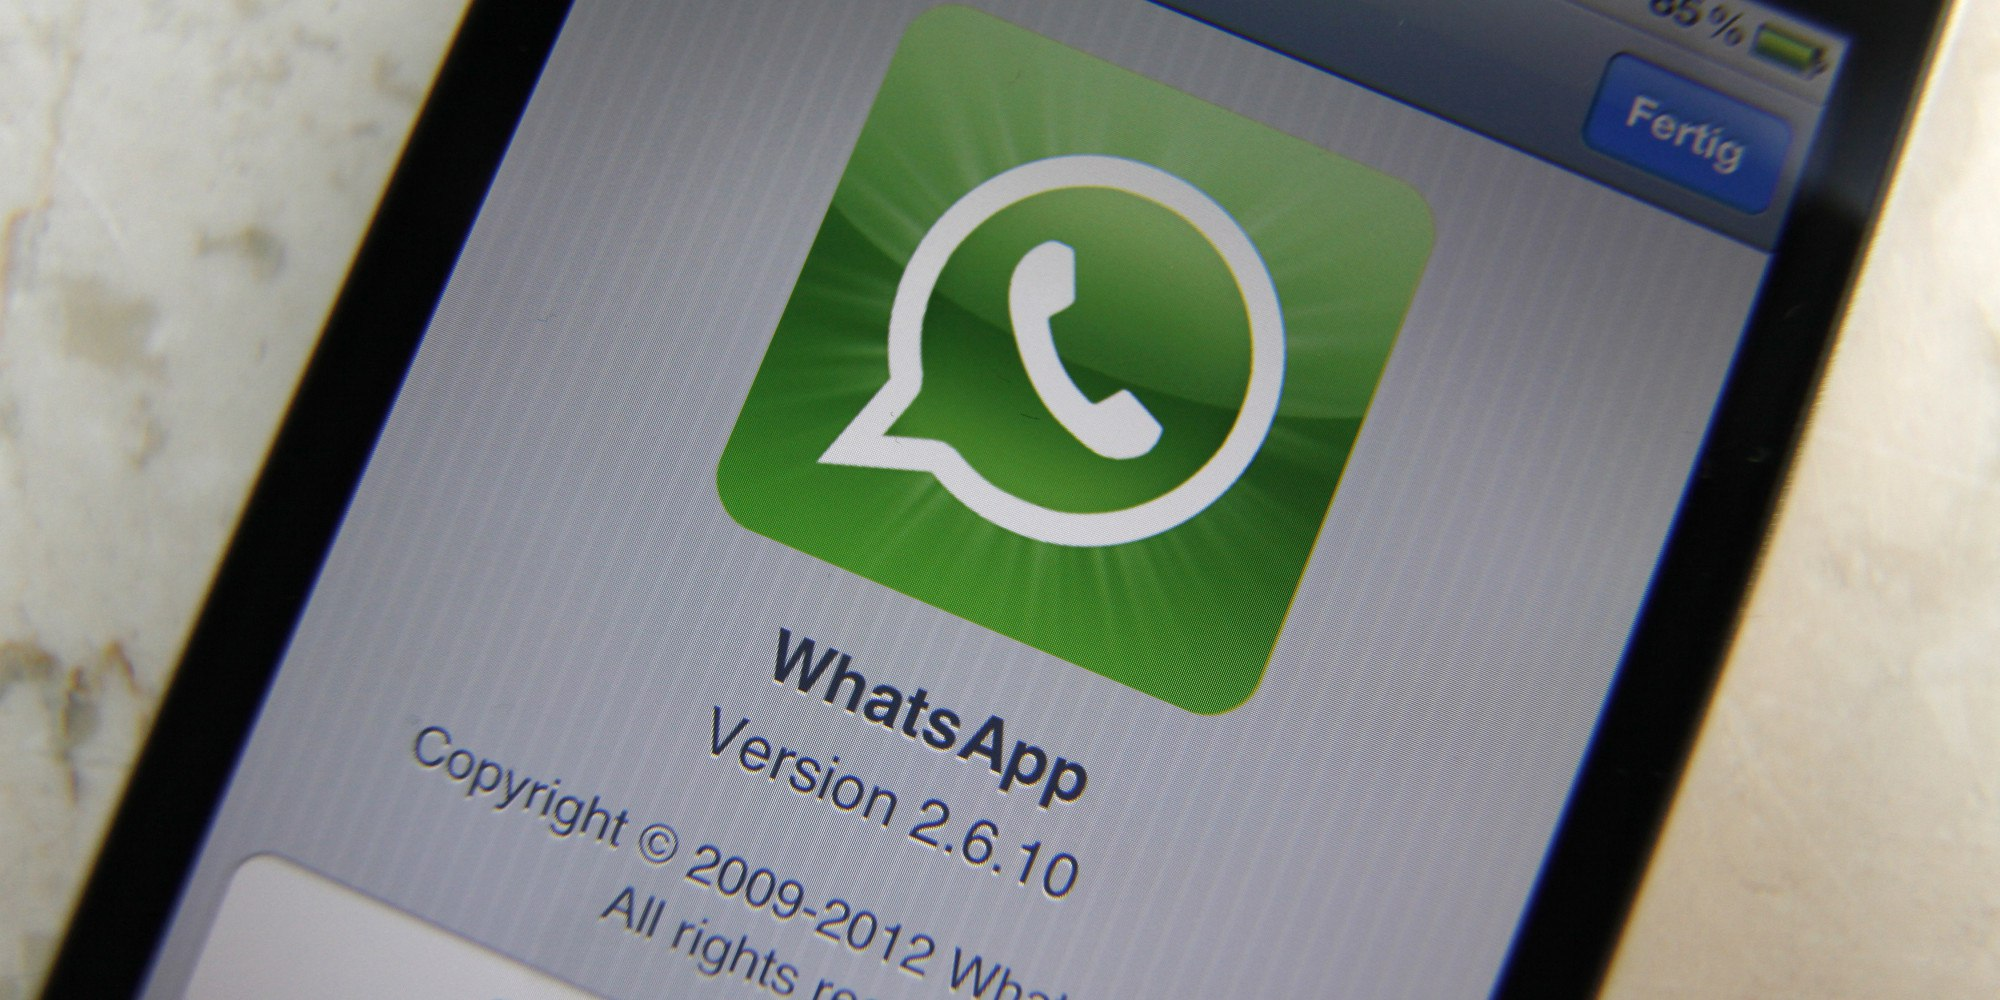 WhatsApp Brings Verified Business Profiles: Begins Monetization